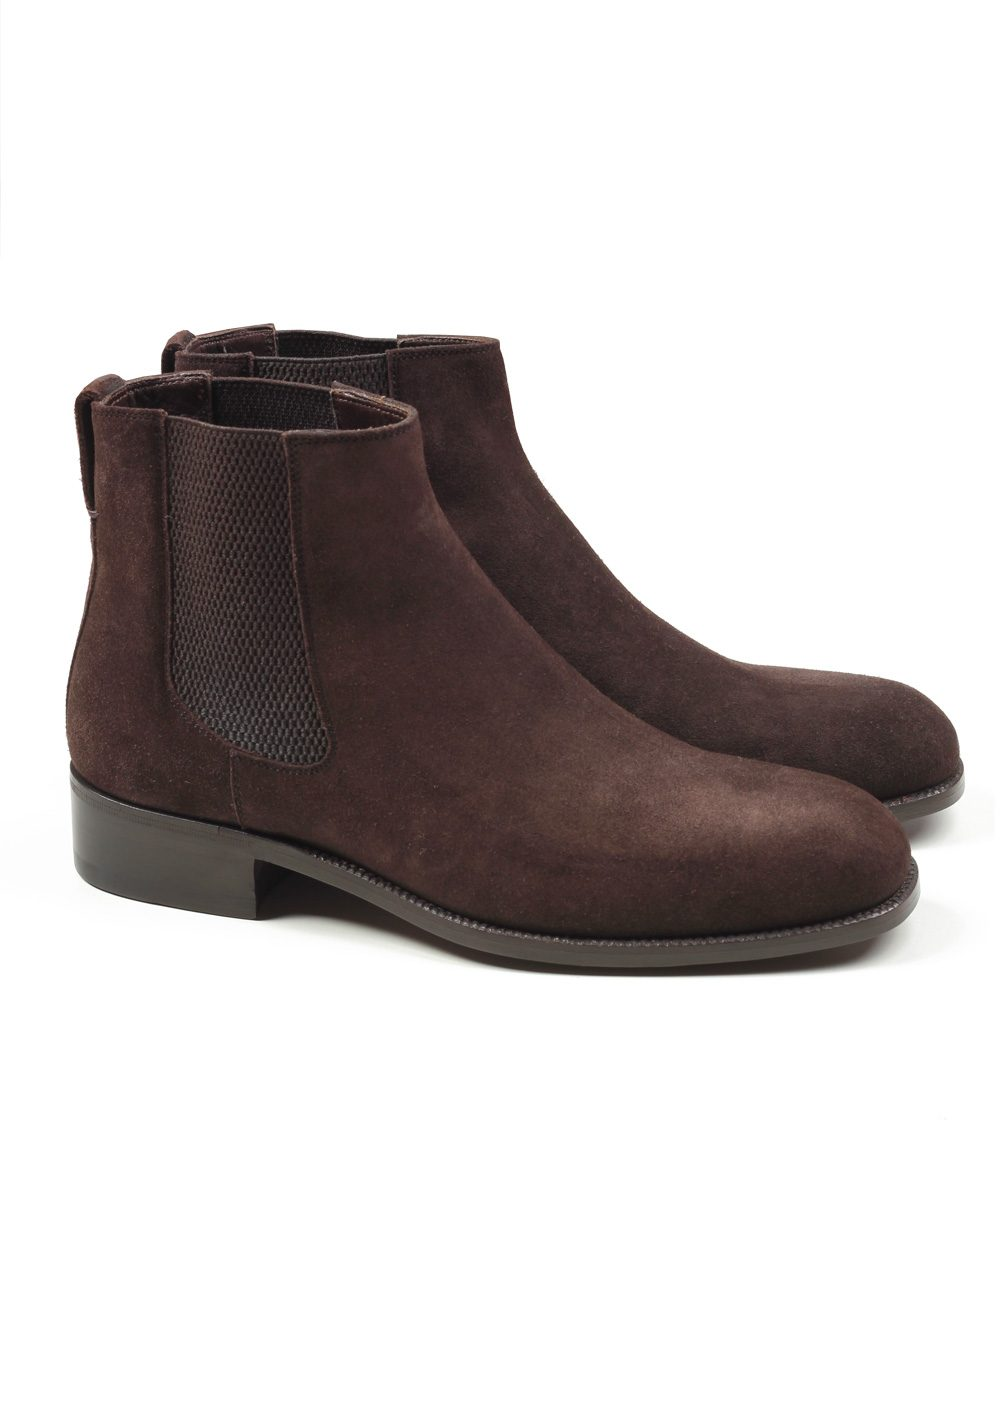 TOM FORD Wilson Brown Suede Chelsea Boots Shoes Size 10.5 Uk / 11.5 U.S. | Costume Limité